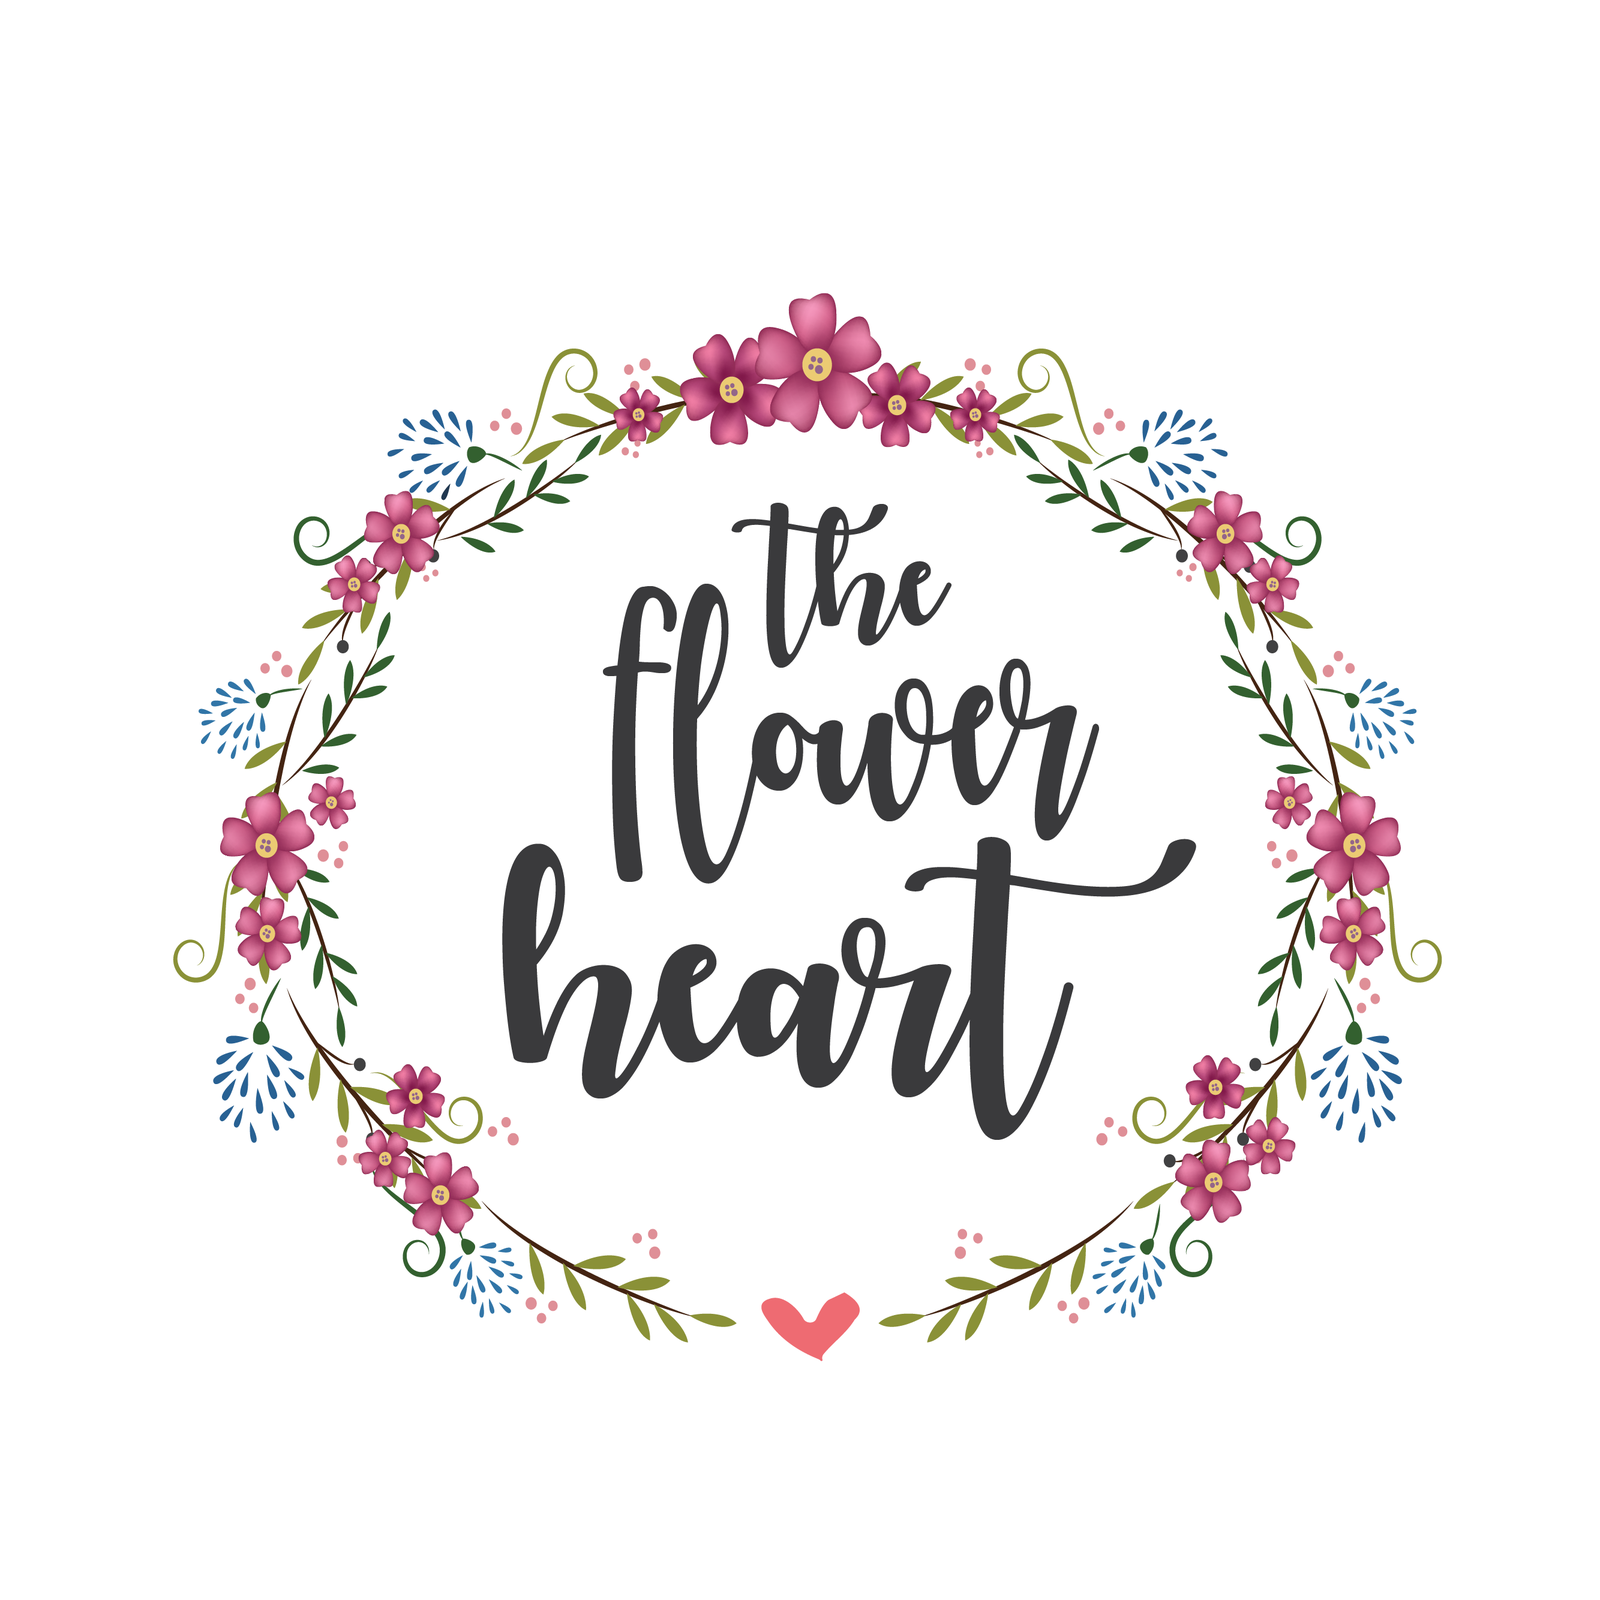 The Flower Heart